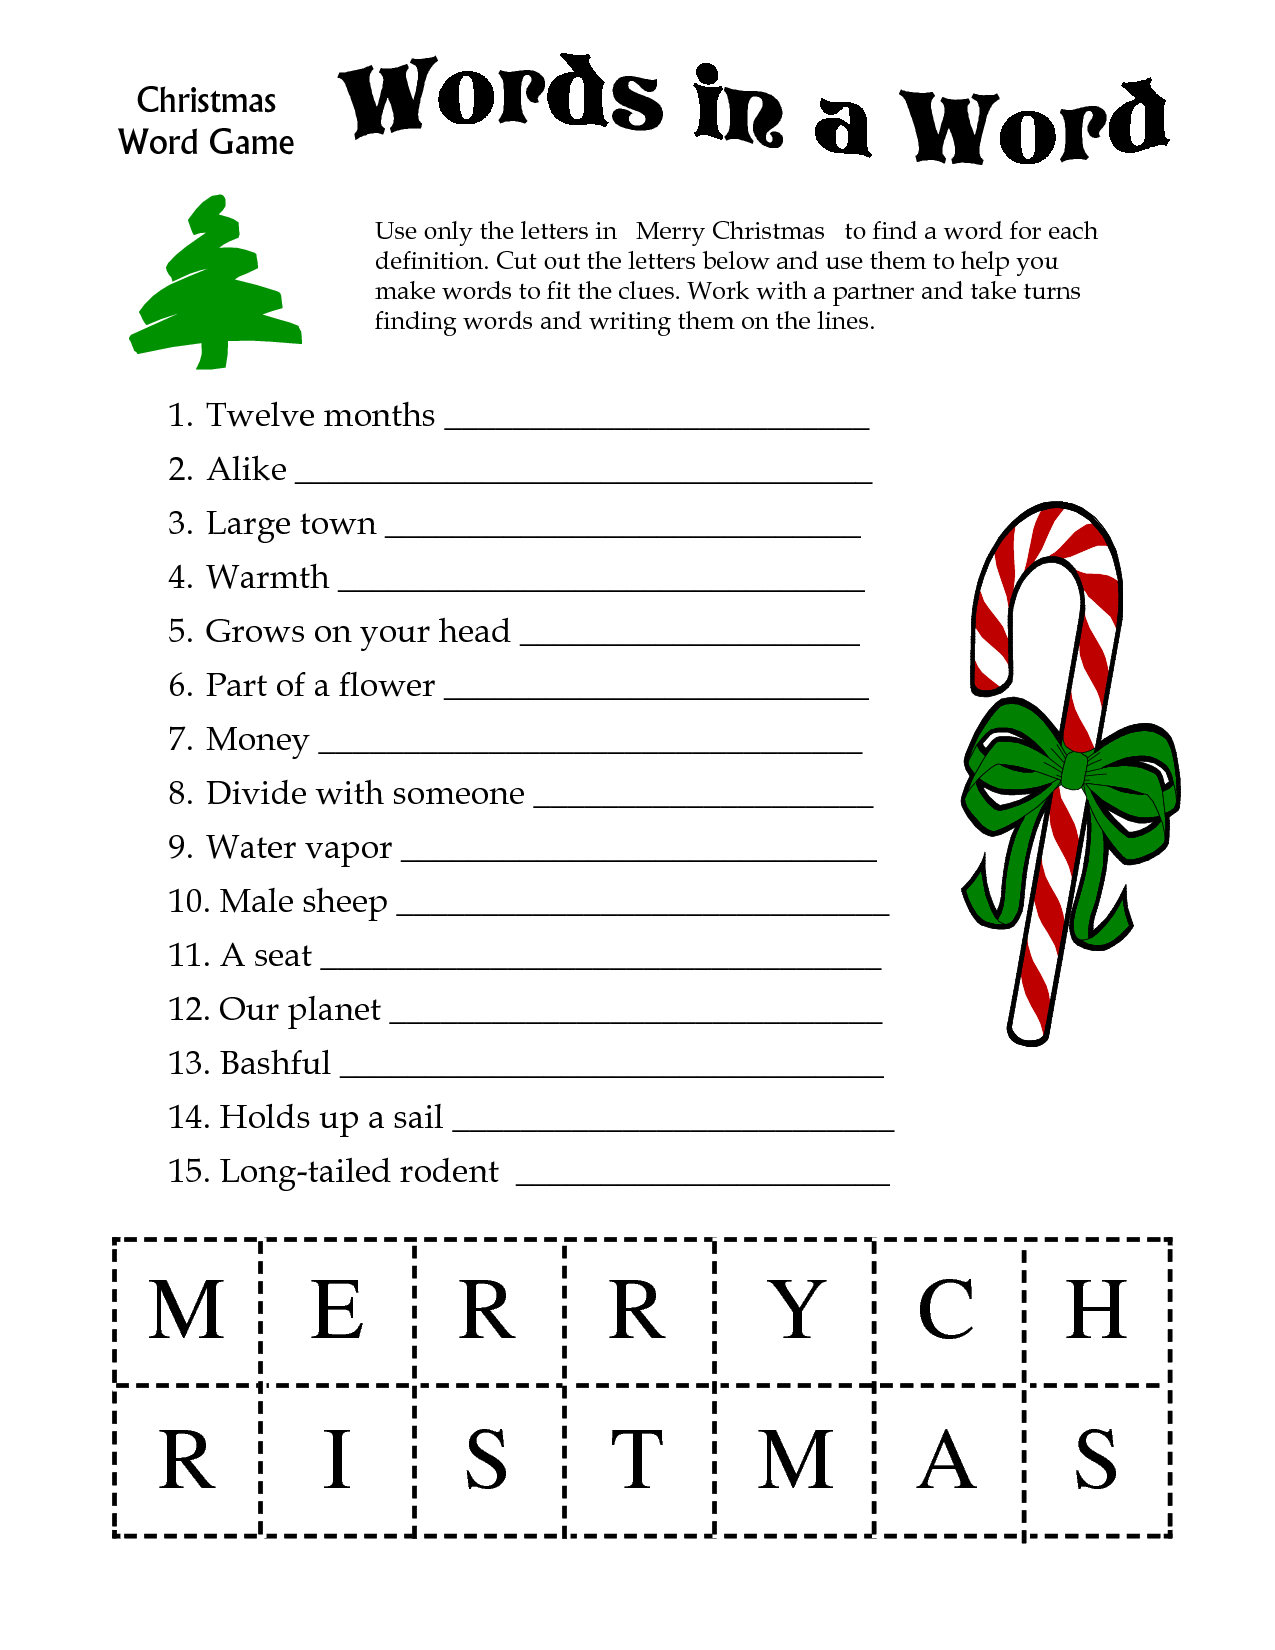 5 Images Of Free Printable Christmas Word Games | Printablee - Free Printable Christmas Word Games For Adults